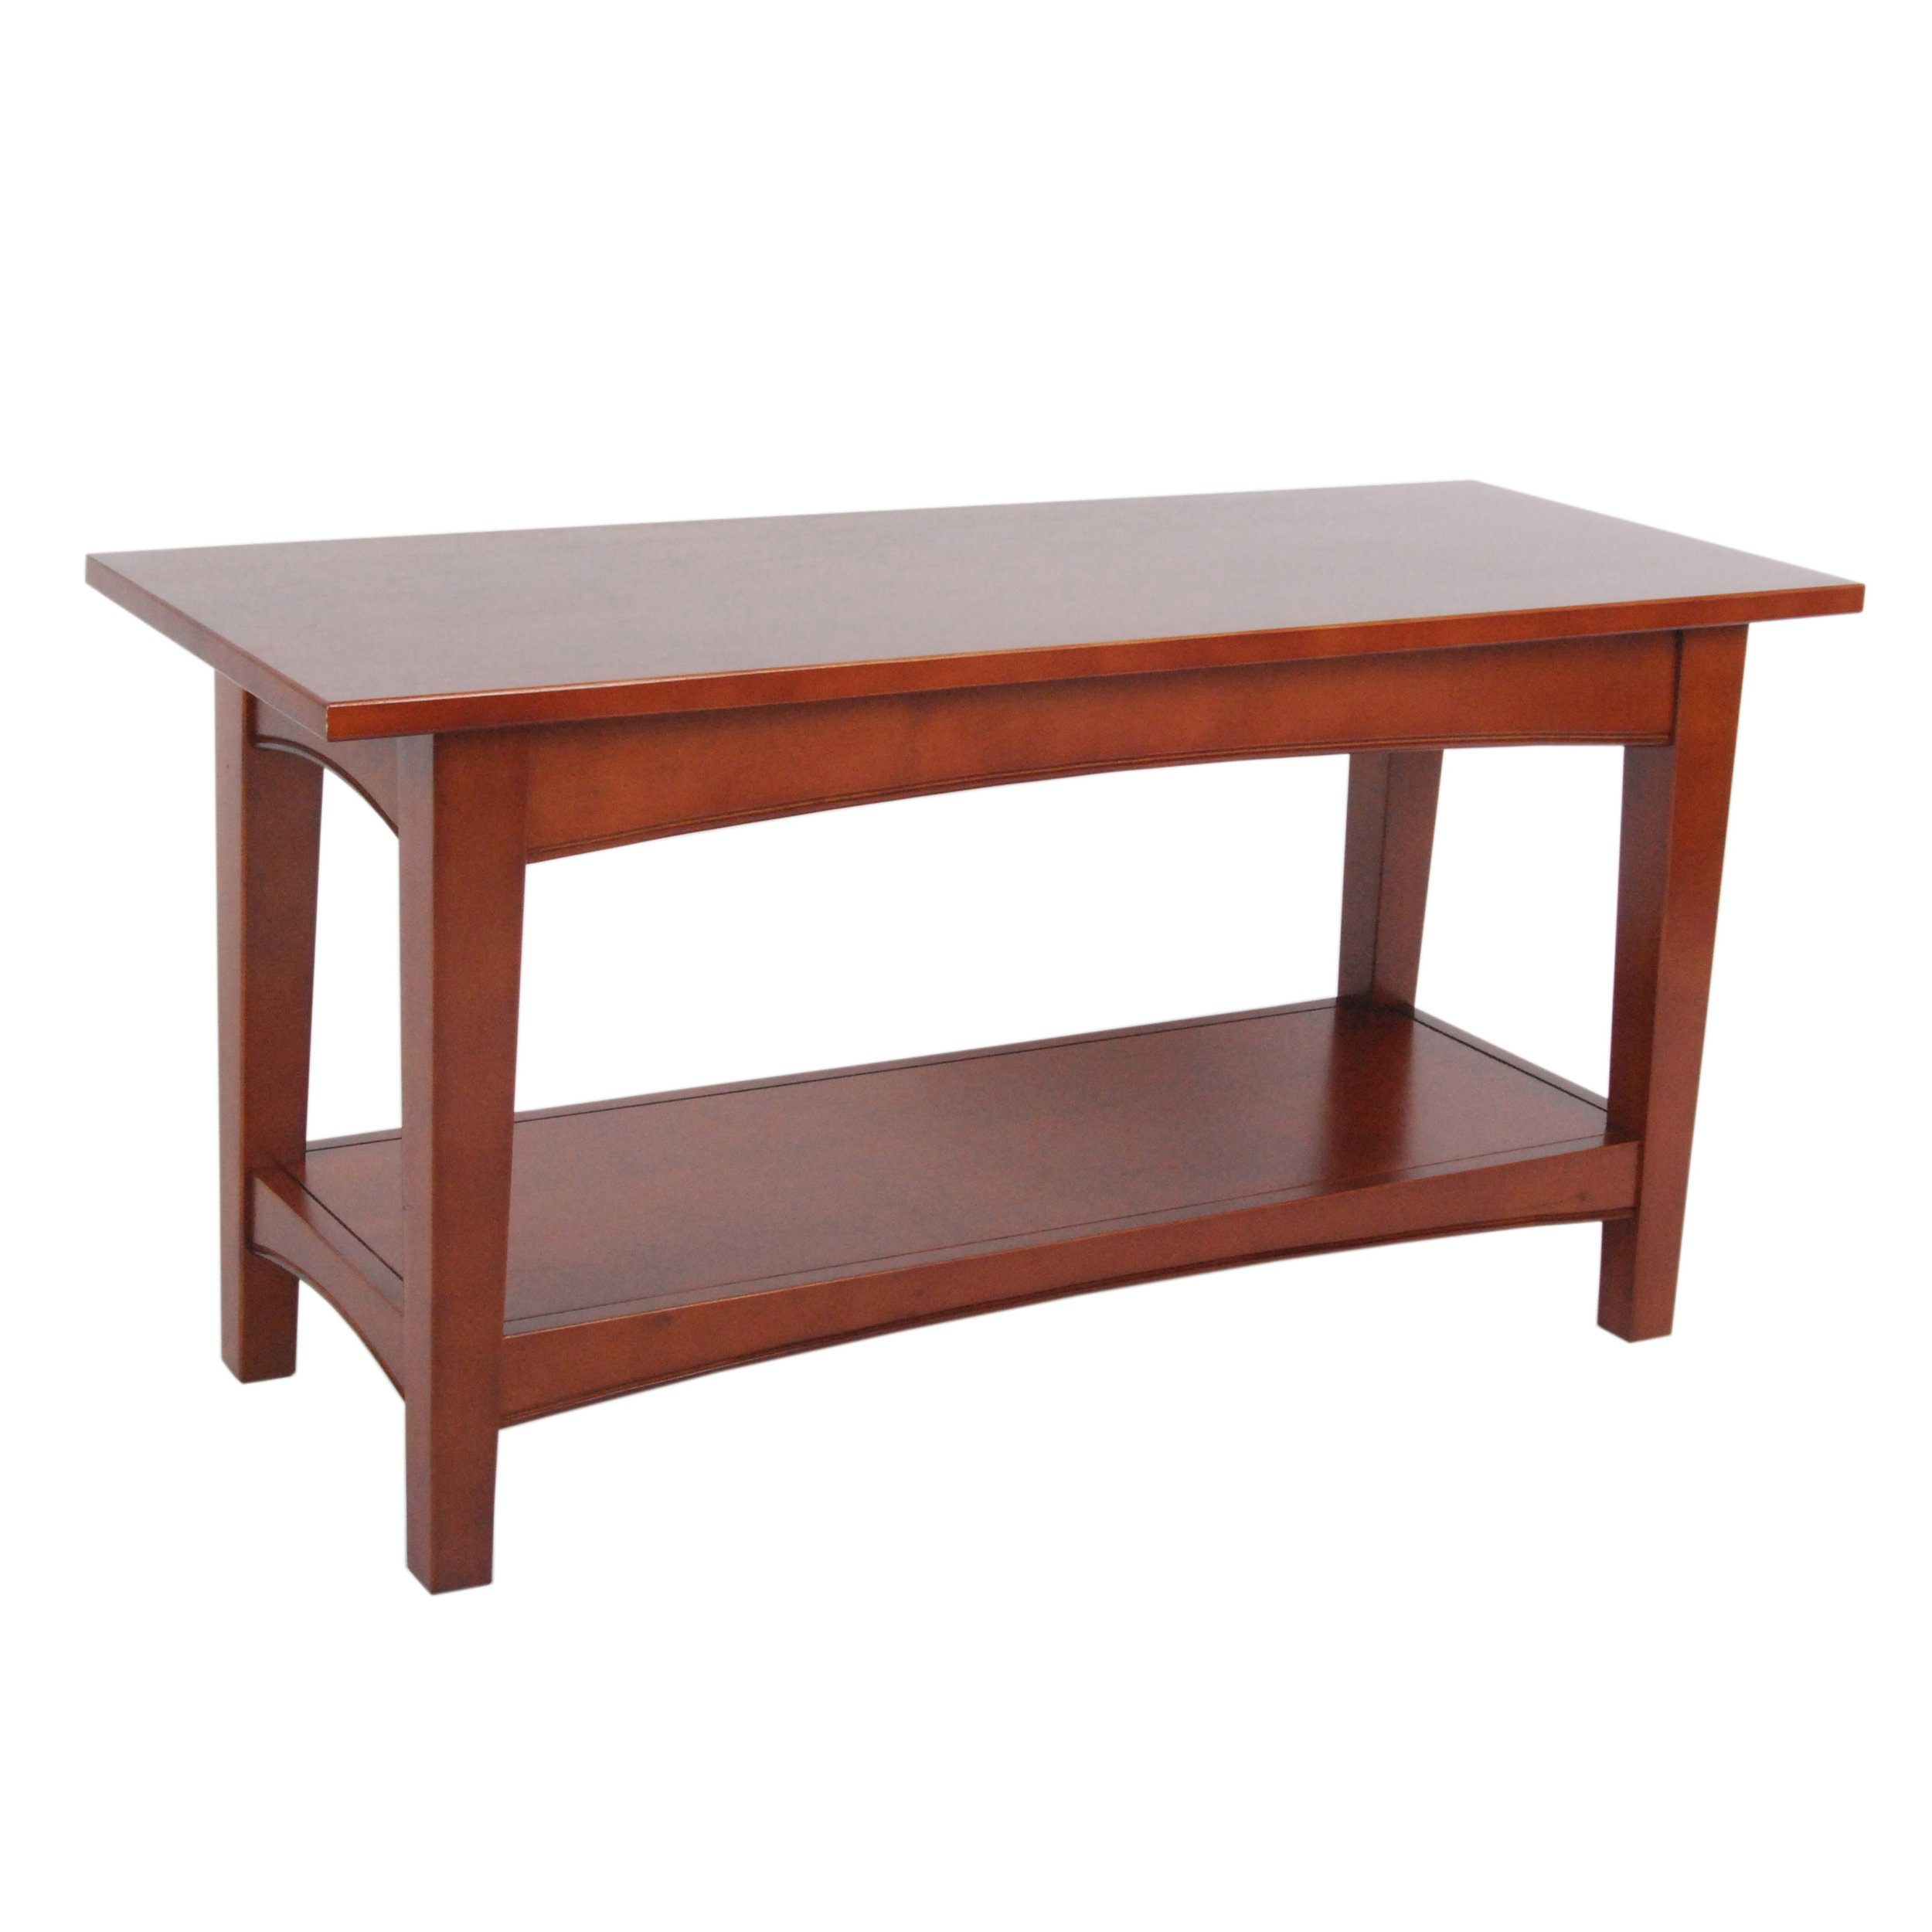 Alaterre Shaker Cottage Bench, Cherry